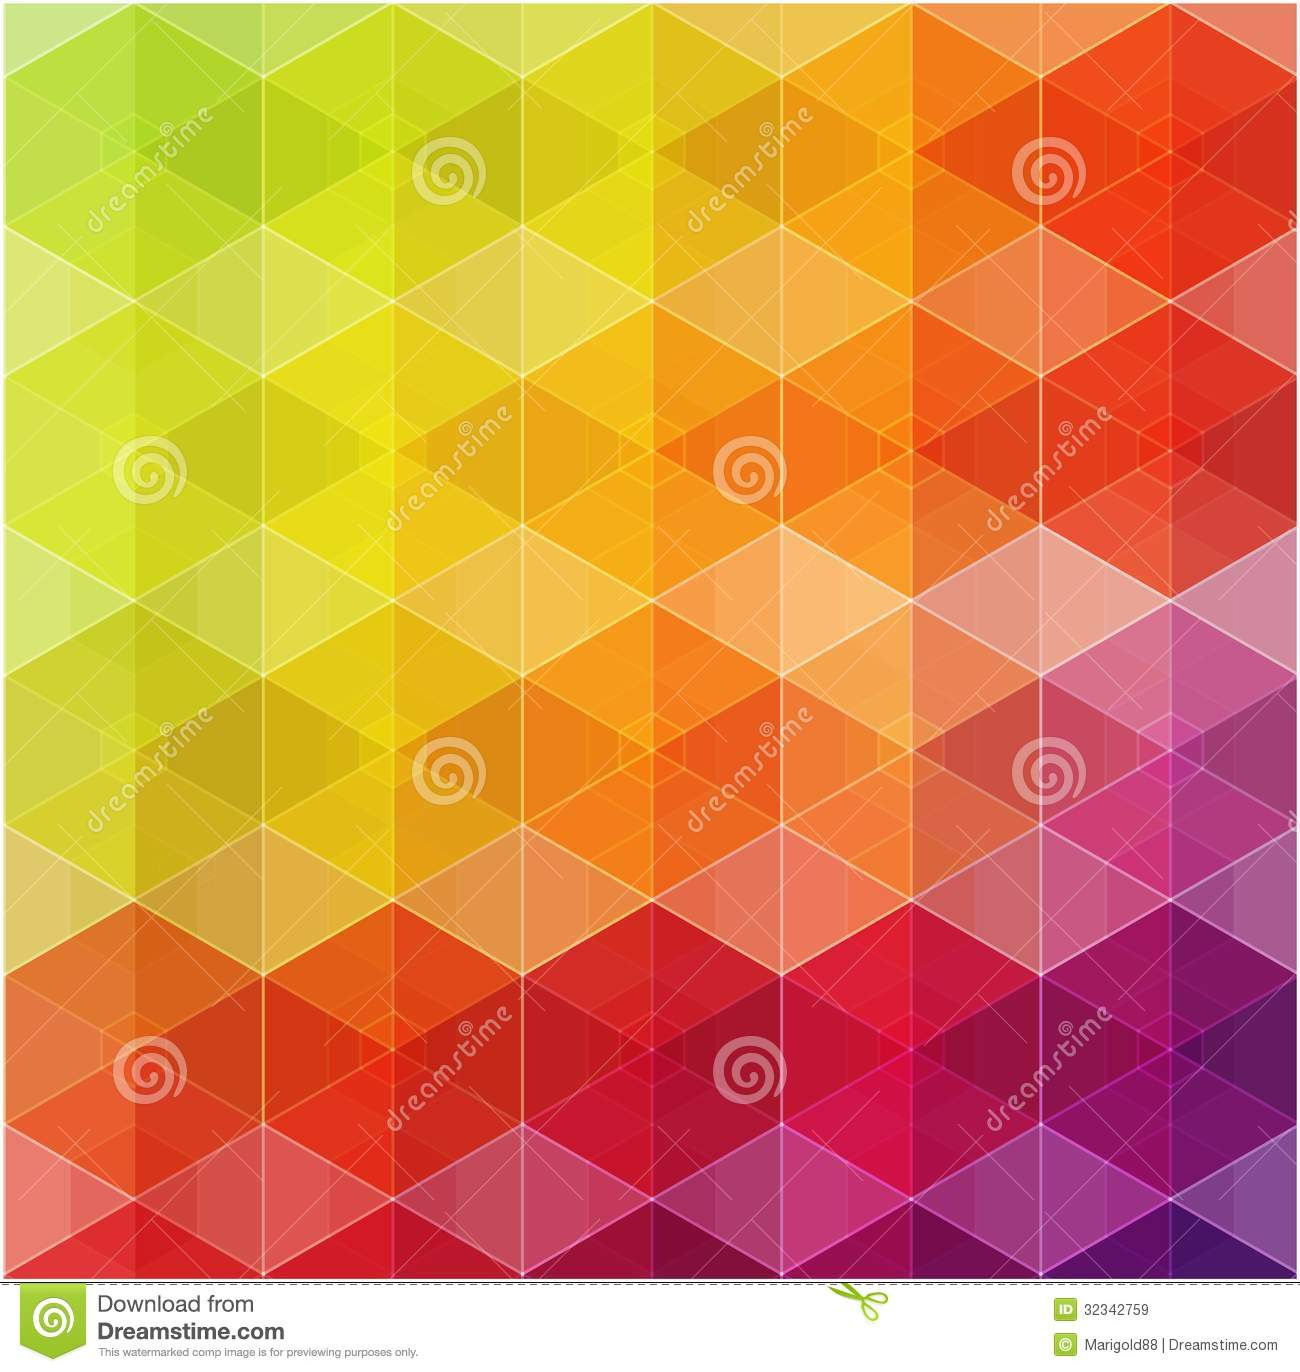 Geometric Hipster Retro Background Royalty Free Stock ...